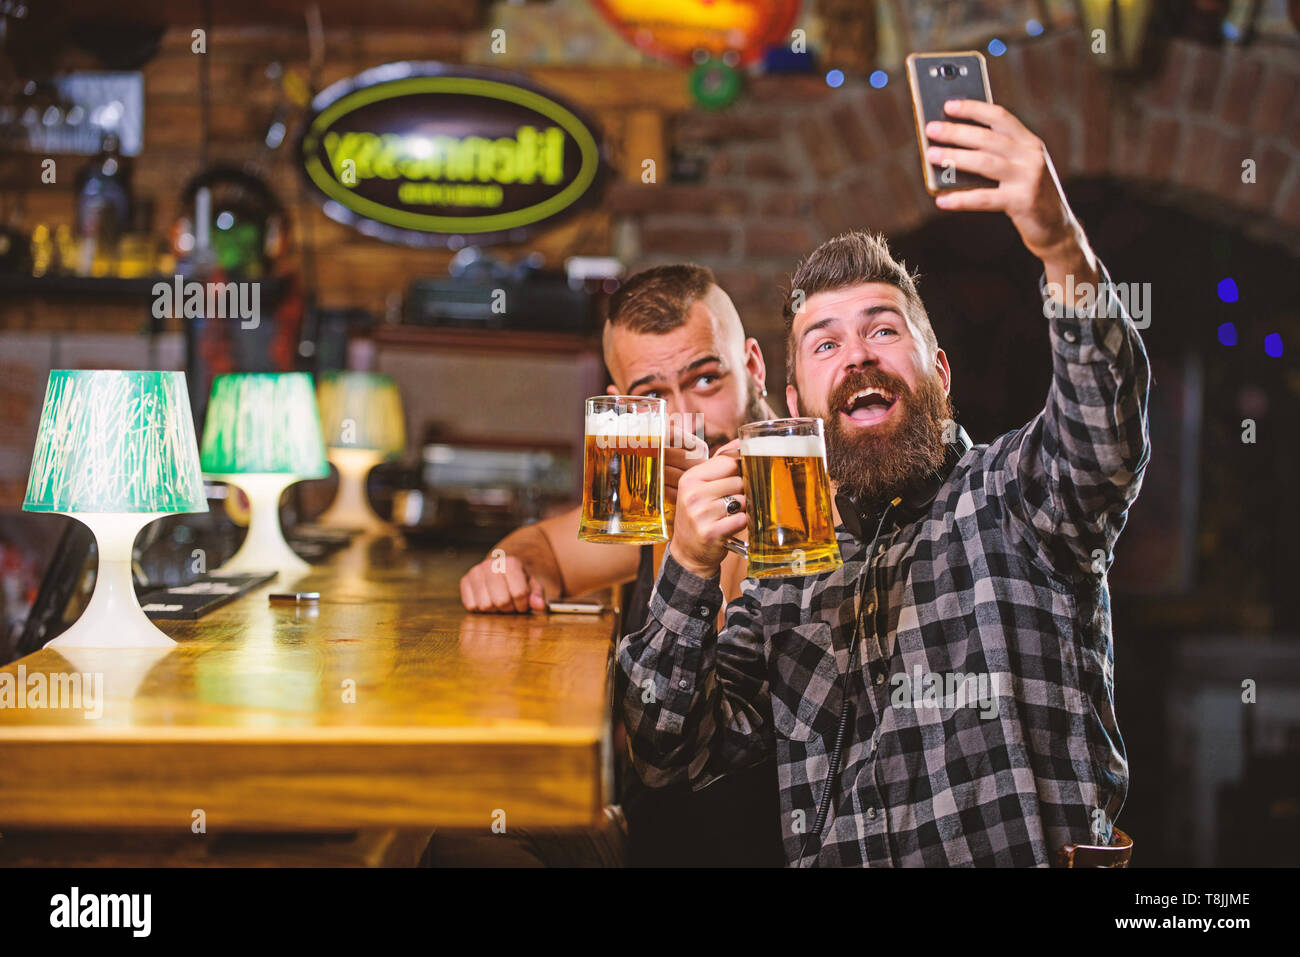 Send selfie to friends social networks. Man in bar drinking beer. Online communication. Man bearded hipster hold smartphone. Taking selfie concept. Take selfie photo to remember great evening in pub. - Stock Image